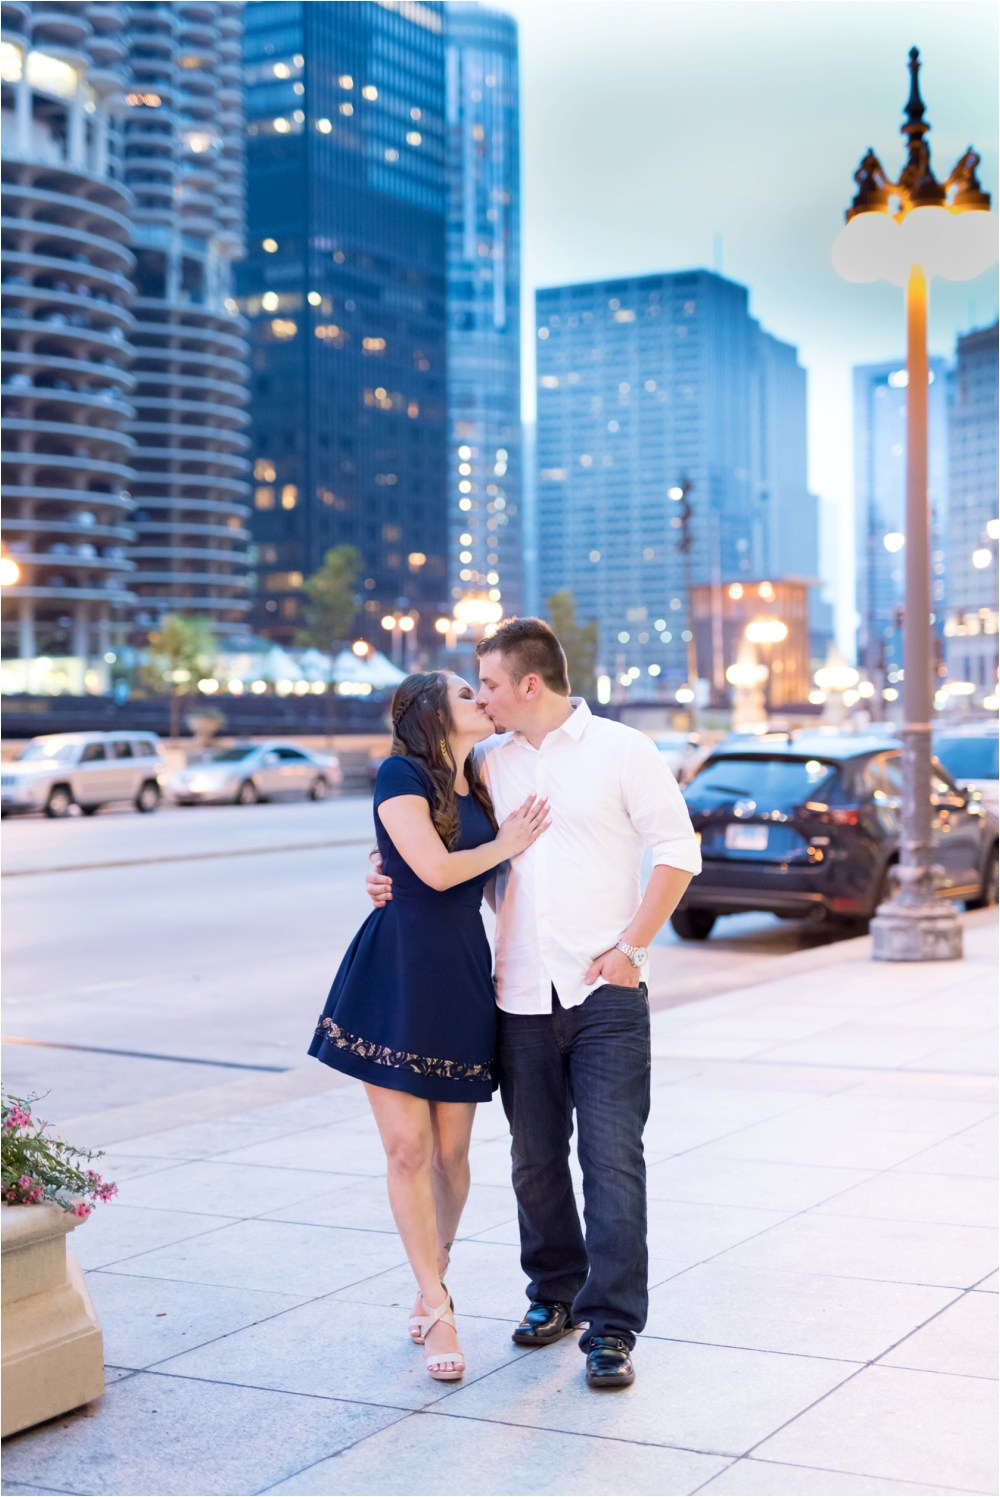 chicago-ilinois-michigna-ave-city-downtown-engagement-photo-62.jpg